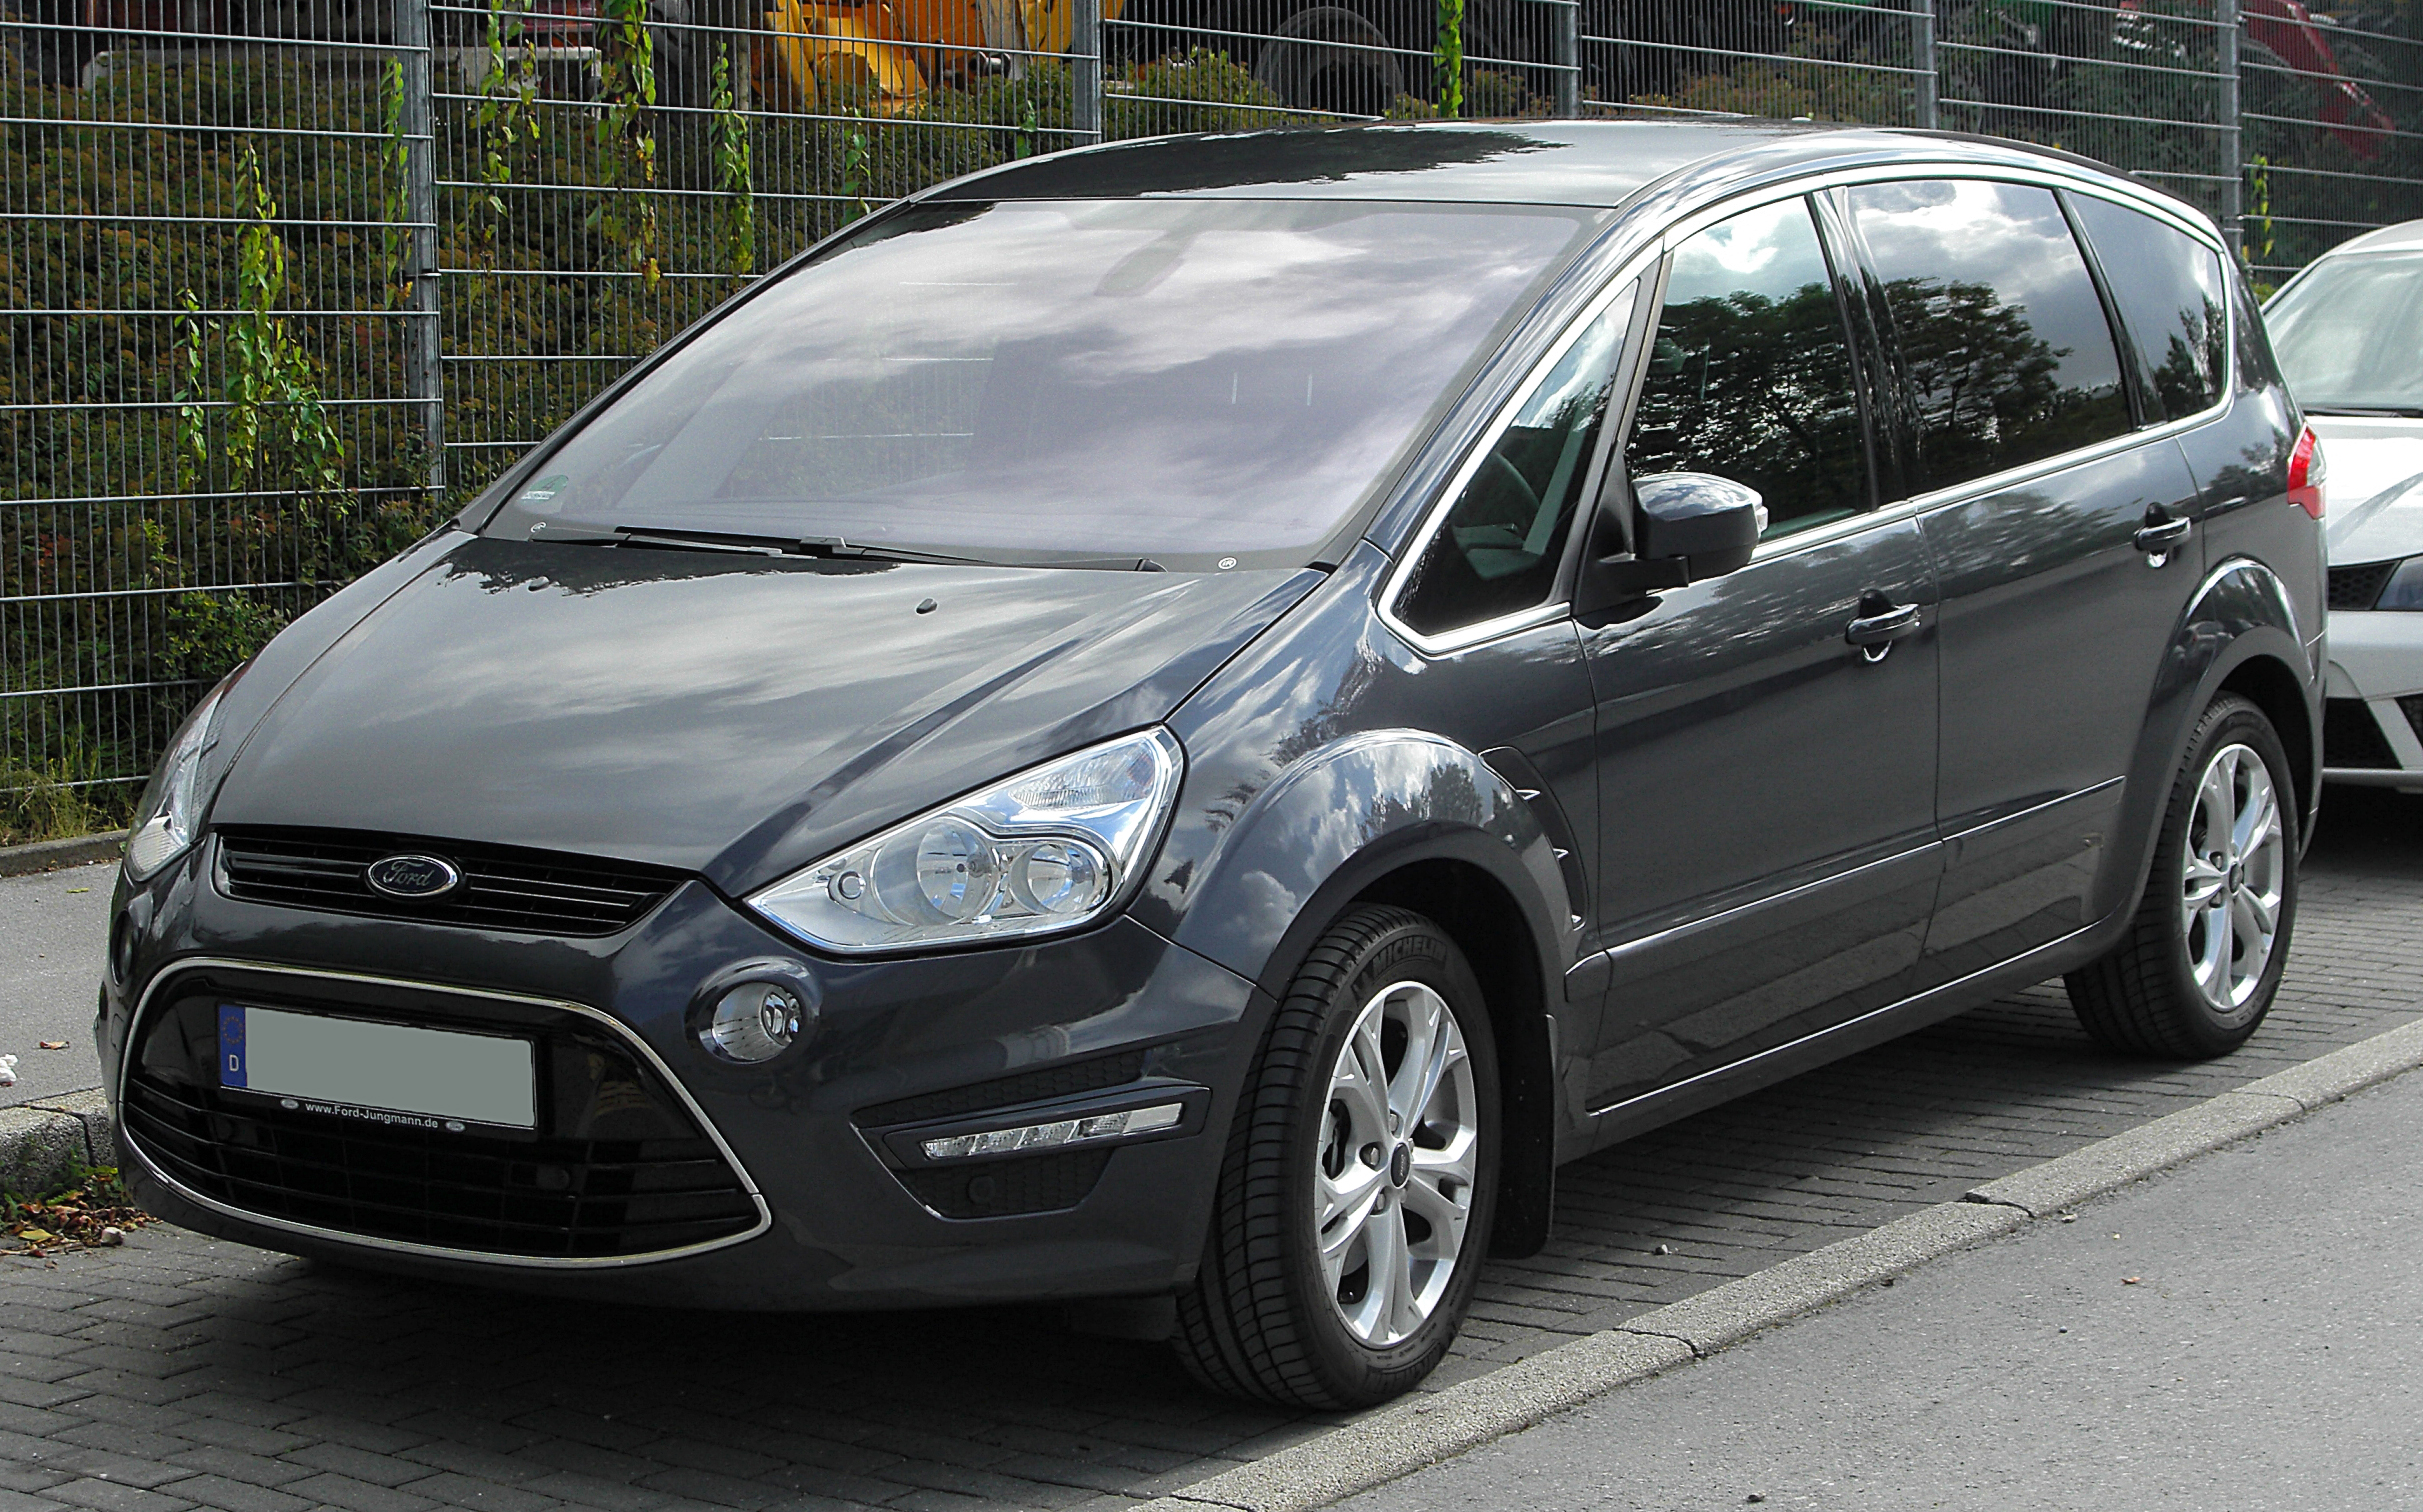 Ford S-Max #8